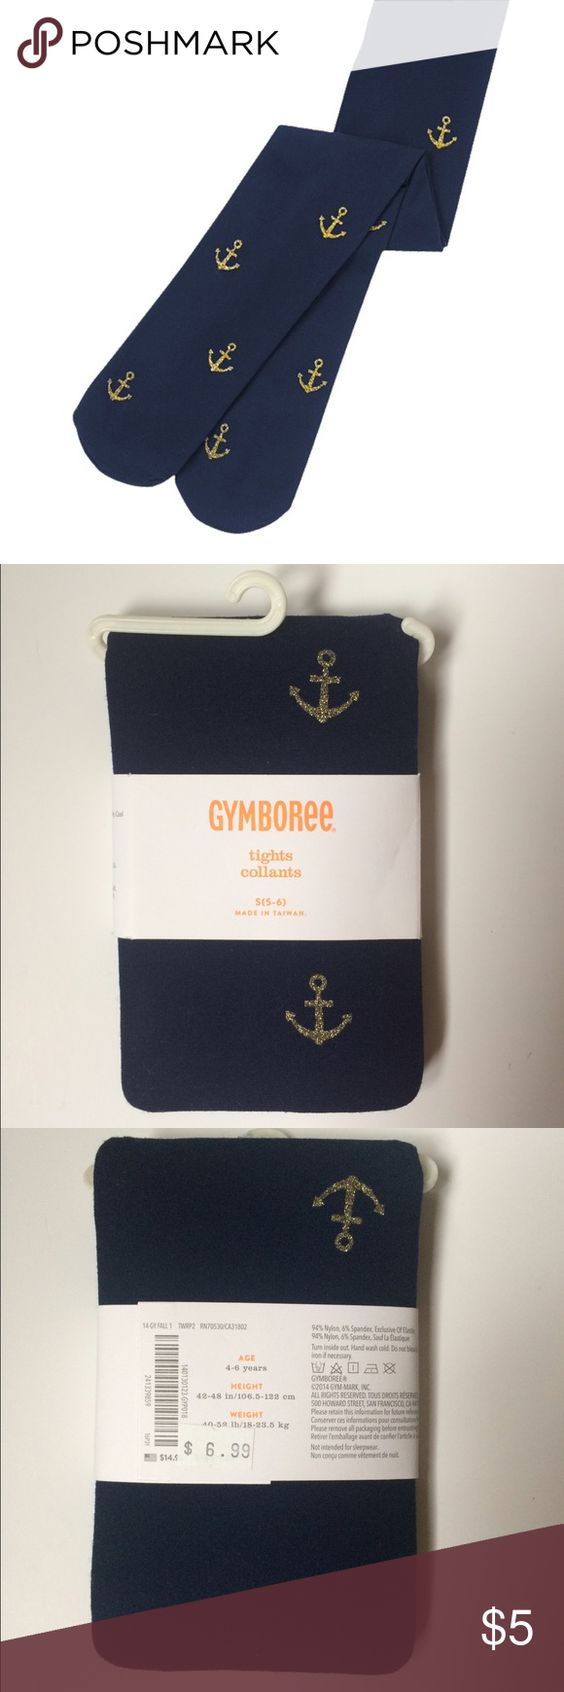 Gymboree navy tights with gold glittery anchors Navy tights with gold glitter anchors. Never opened. Non-smoking home. Purchased to go with Gymboree dress also listed. Gymboree Accessories Socks & Tights